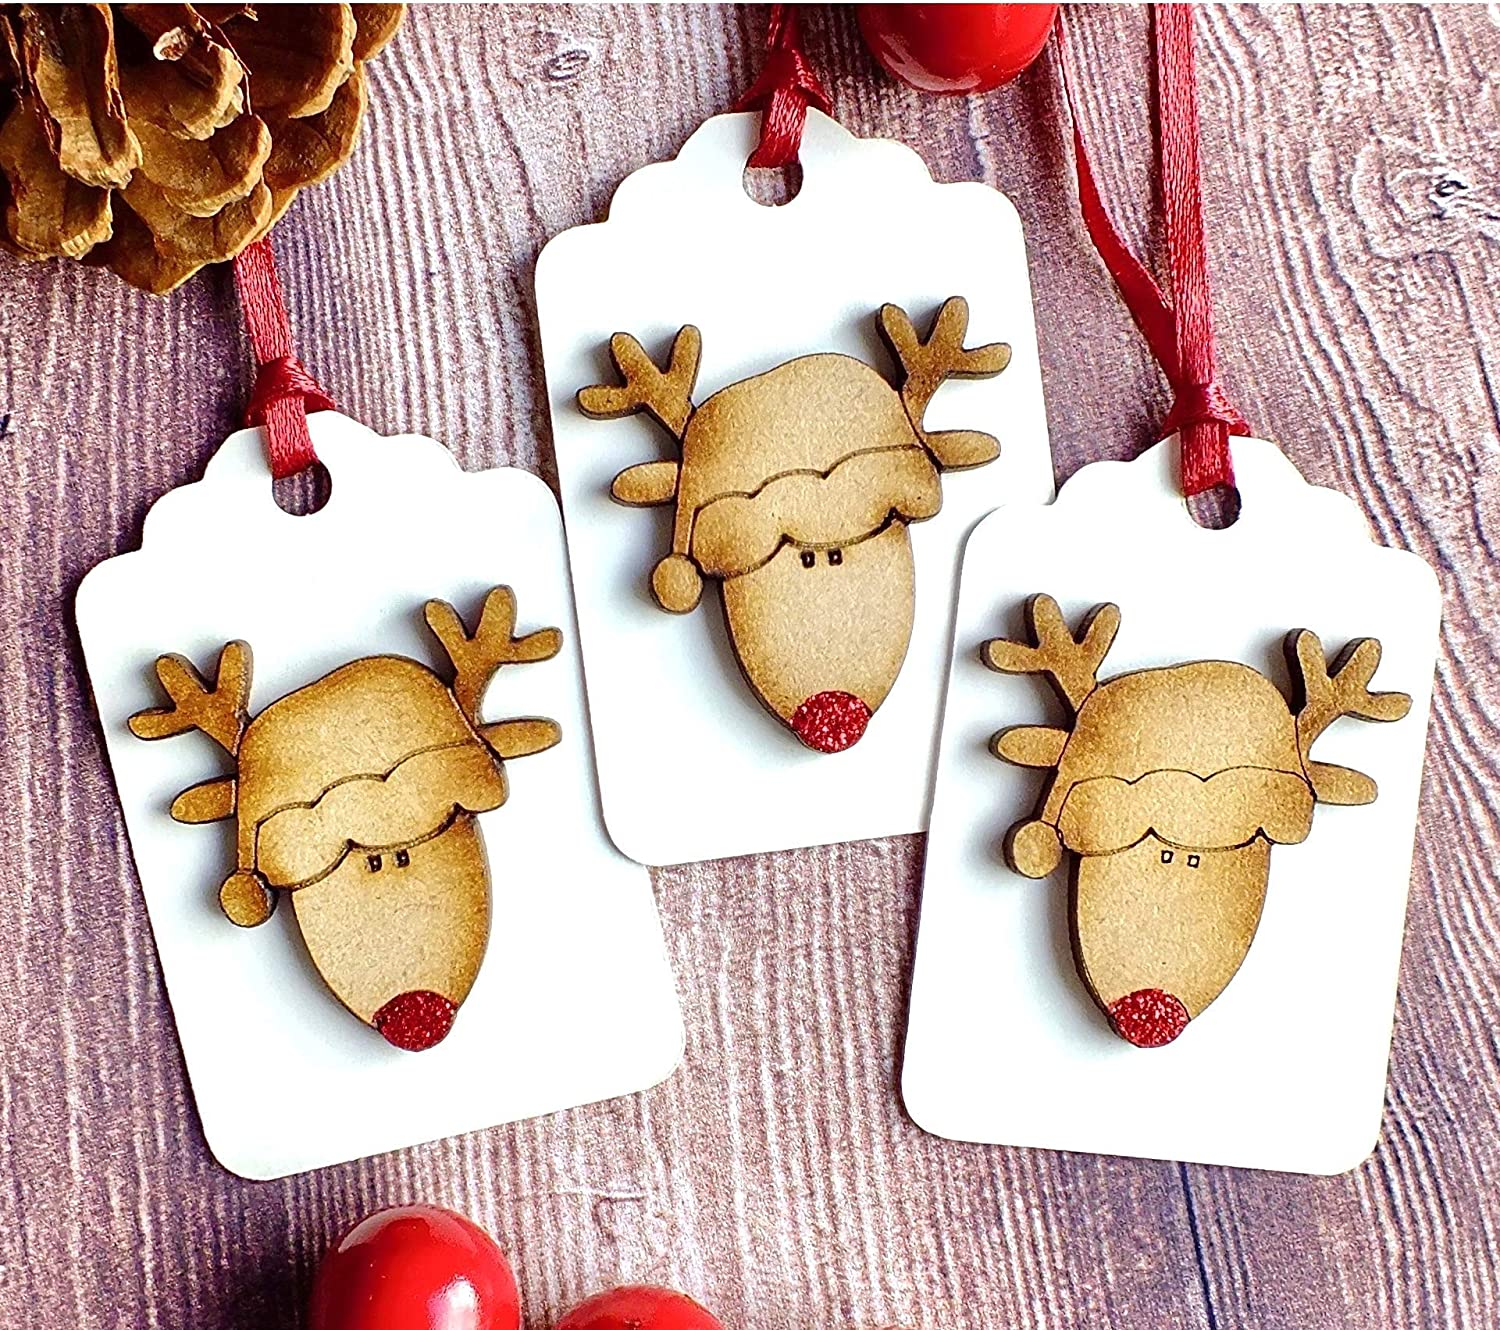 Christmas Gift Tags Handmade.3 X Luxury Wooden Christmas Gift Tags Rustic Handmade Cute Rudolph Reindeer Hang Tags Red